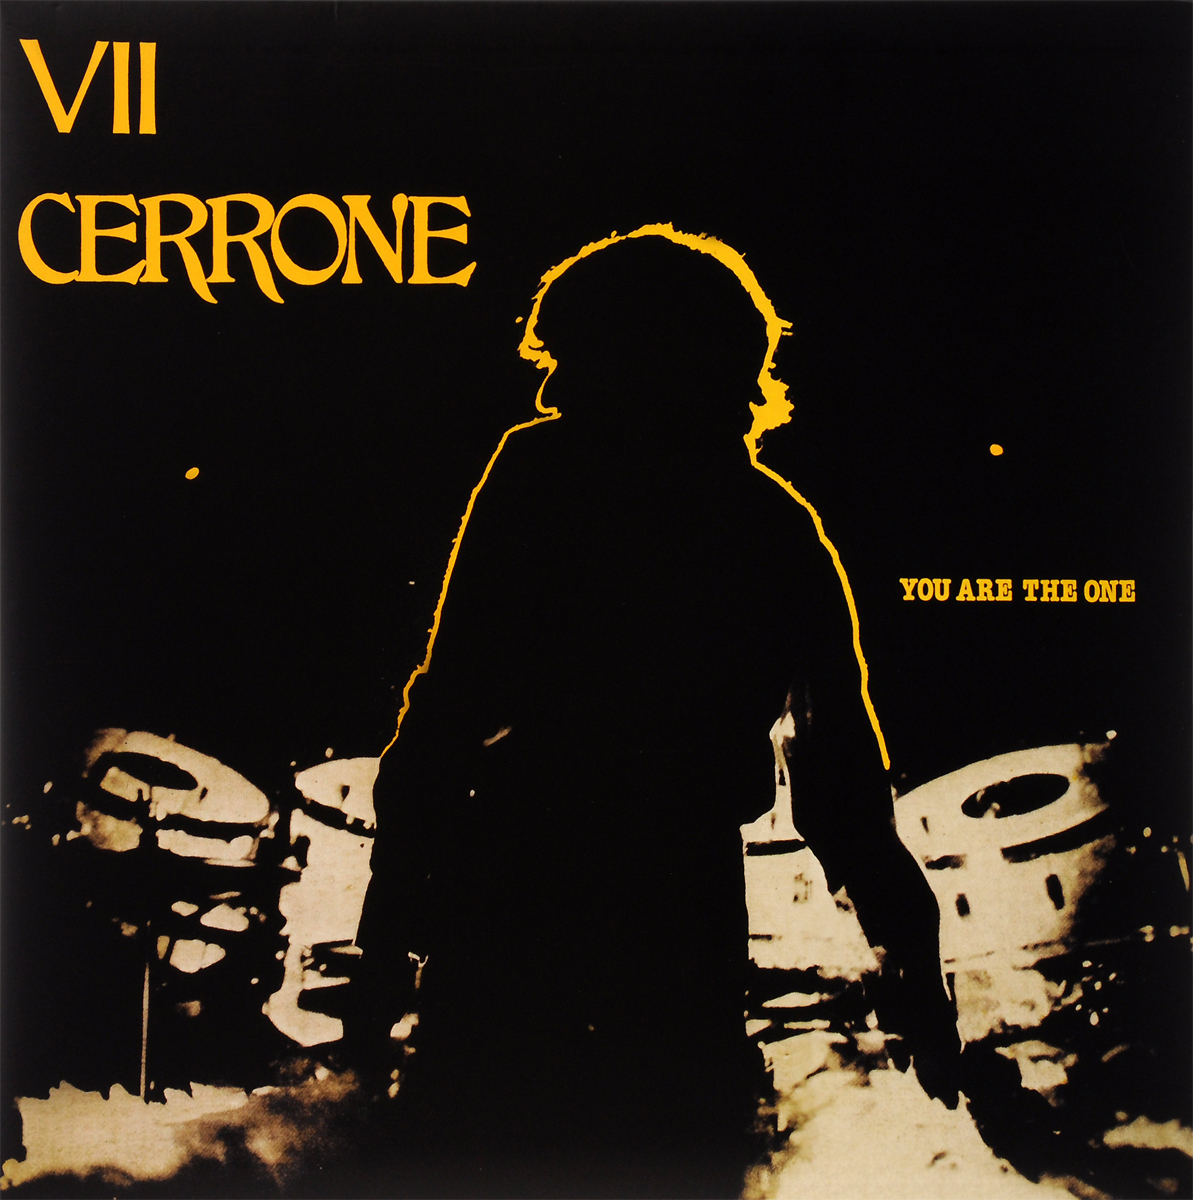 Cerrone,Джоcелин Браун Cerrone, Jocelyn Brown. Cerrone VII. You Are The One (LP + CD) partners lp cd